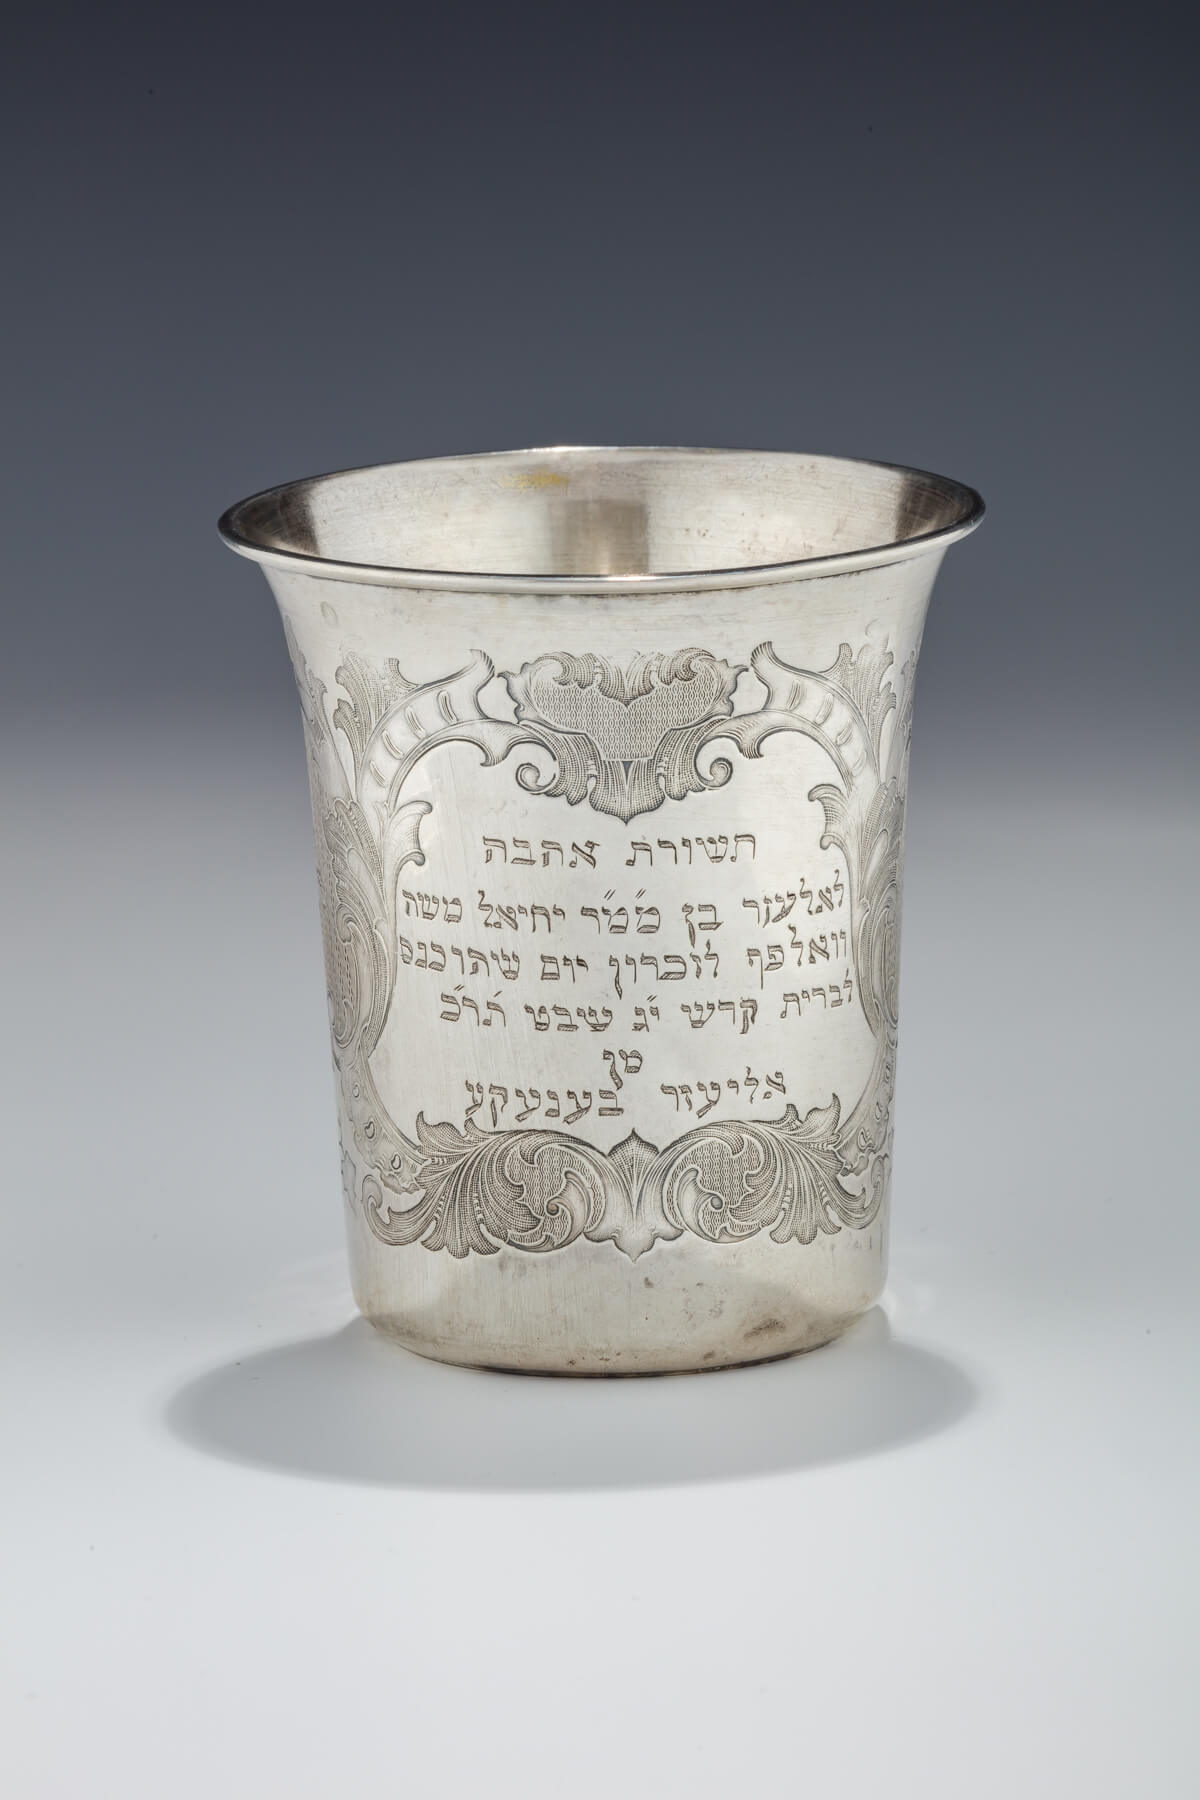 060. A Large Silver Kiddush Cup